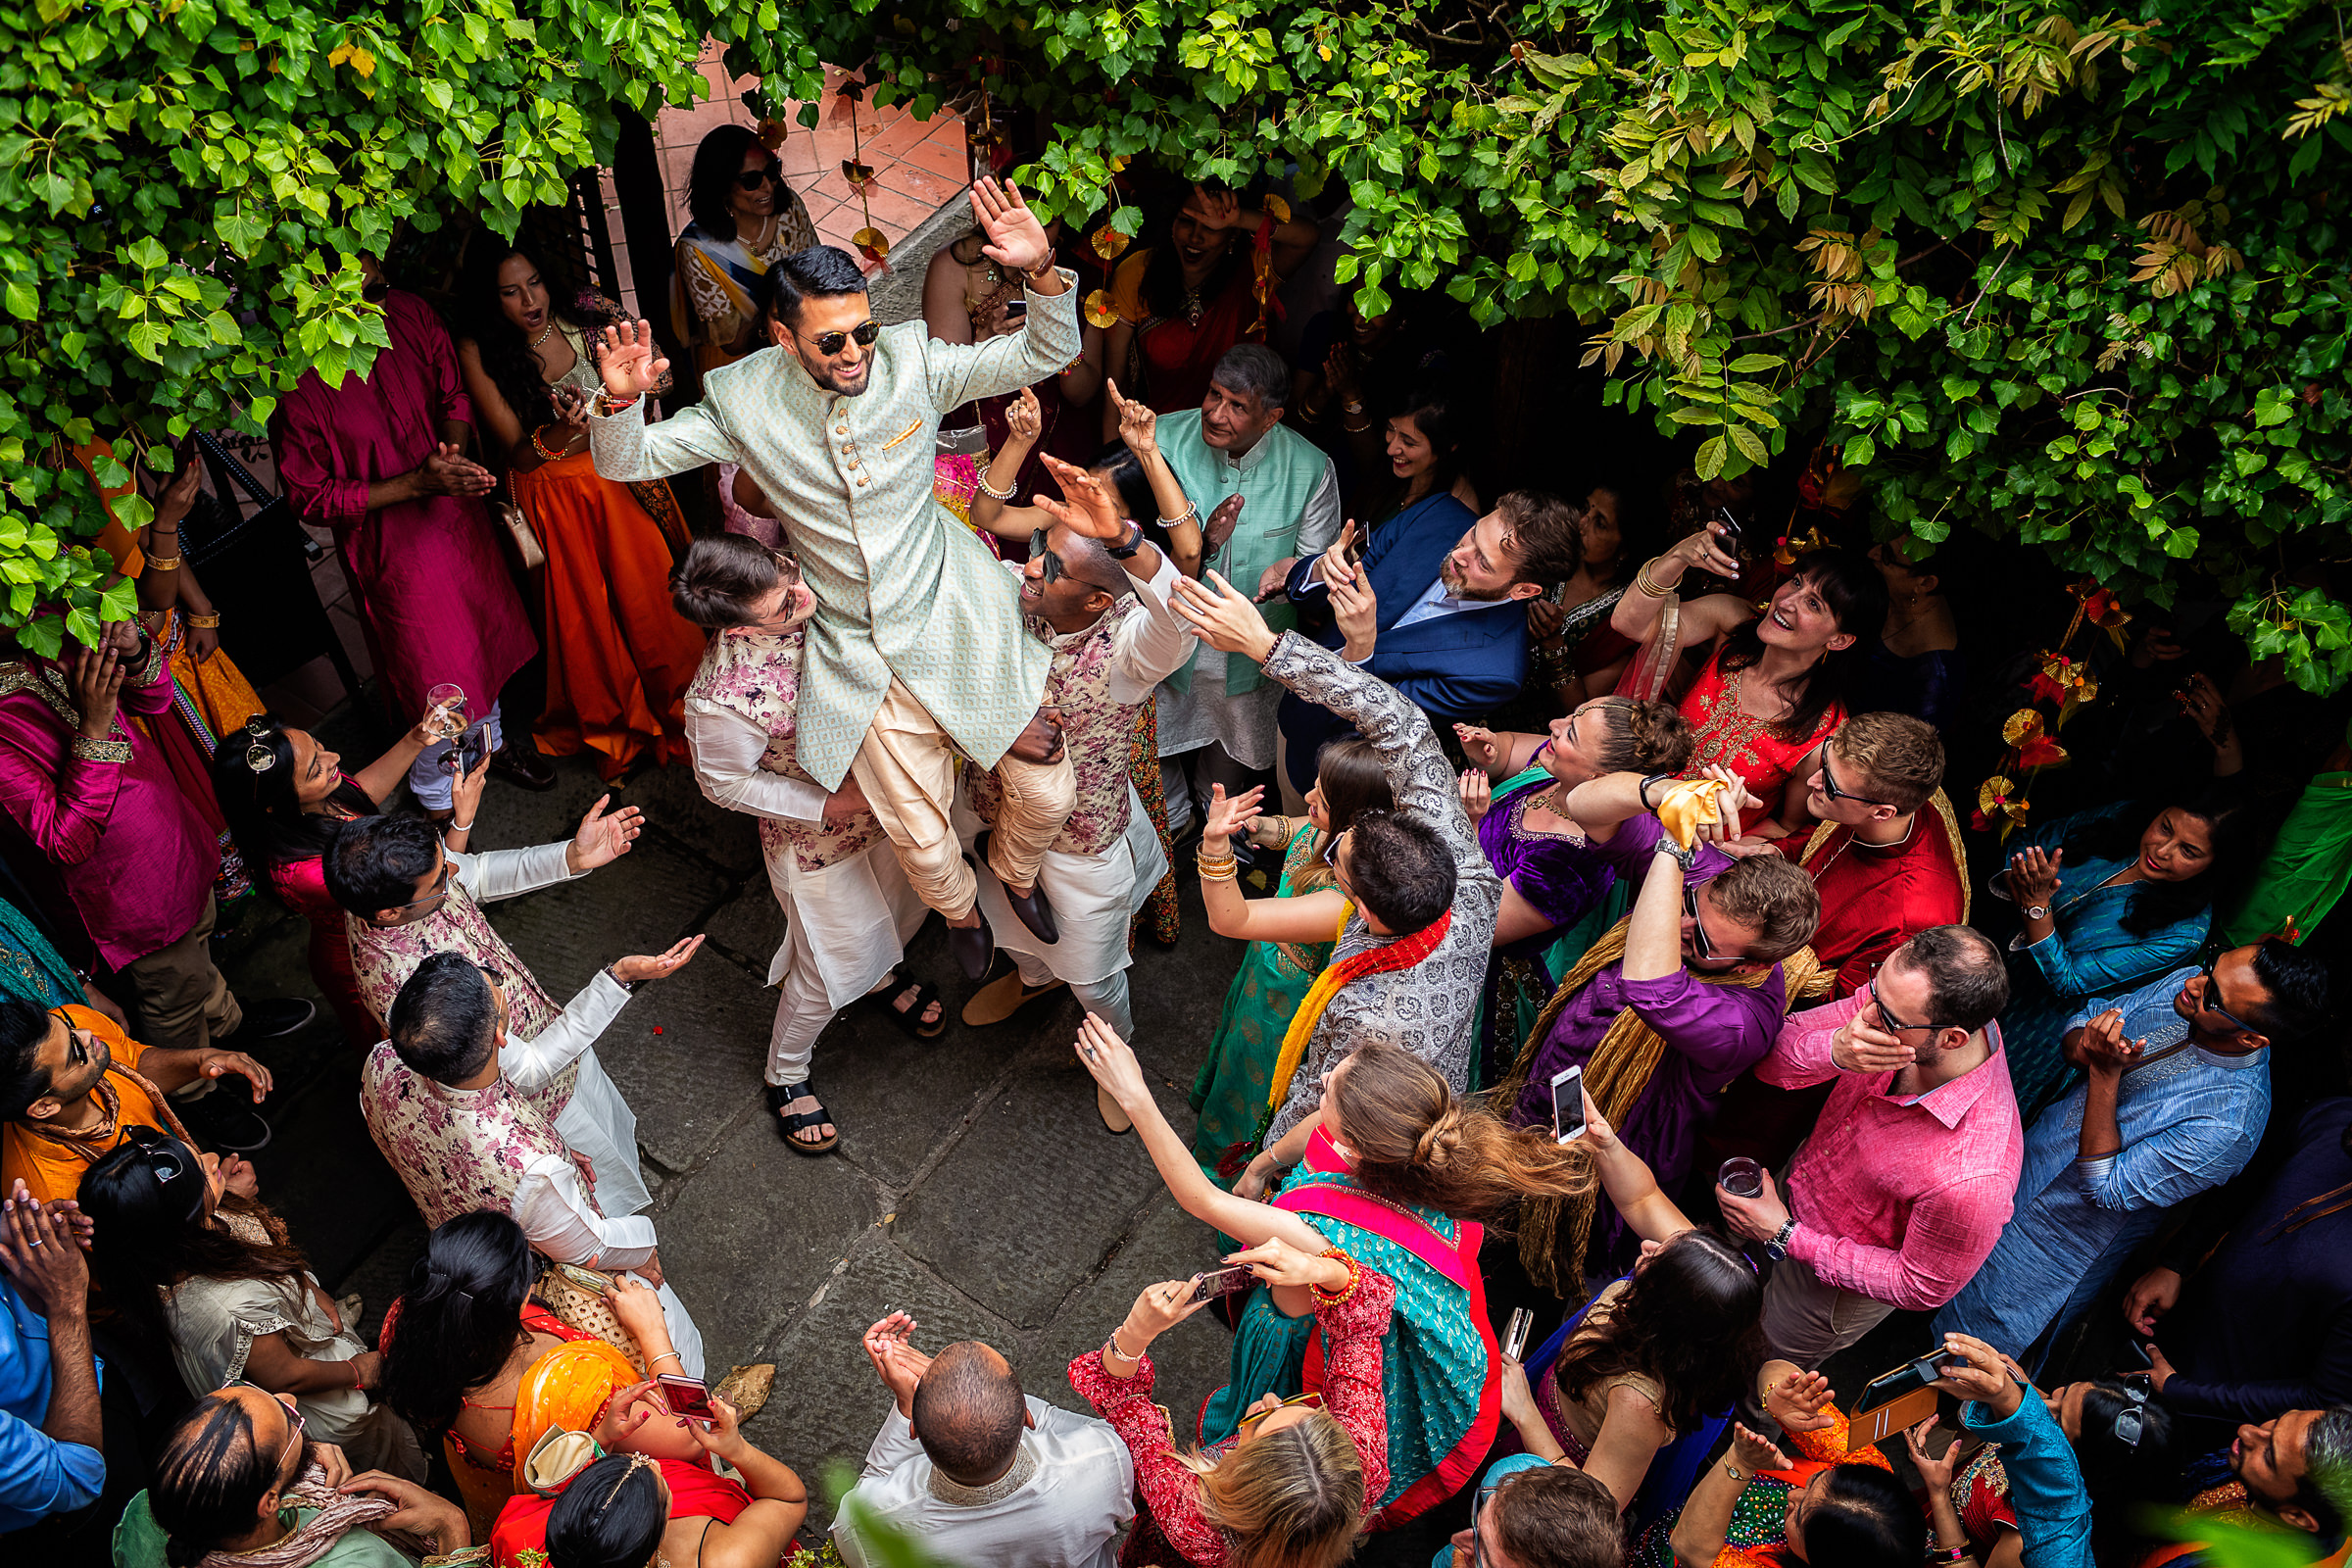 Aerial view of groomsmen carrying the groom aloft amid colorful crowd of guests - photo by D2 Photography